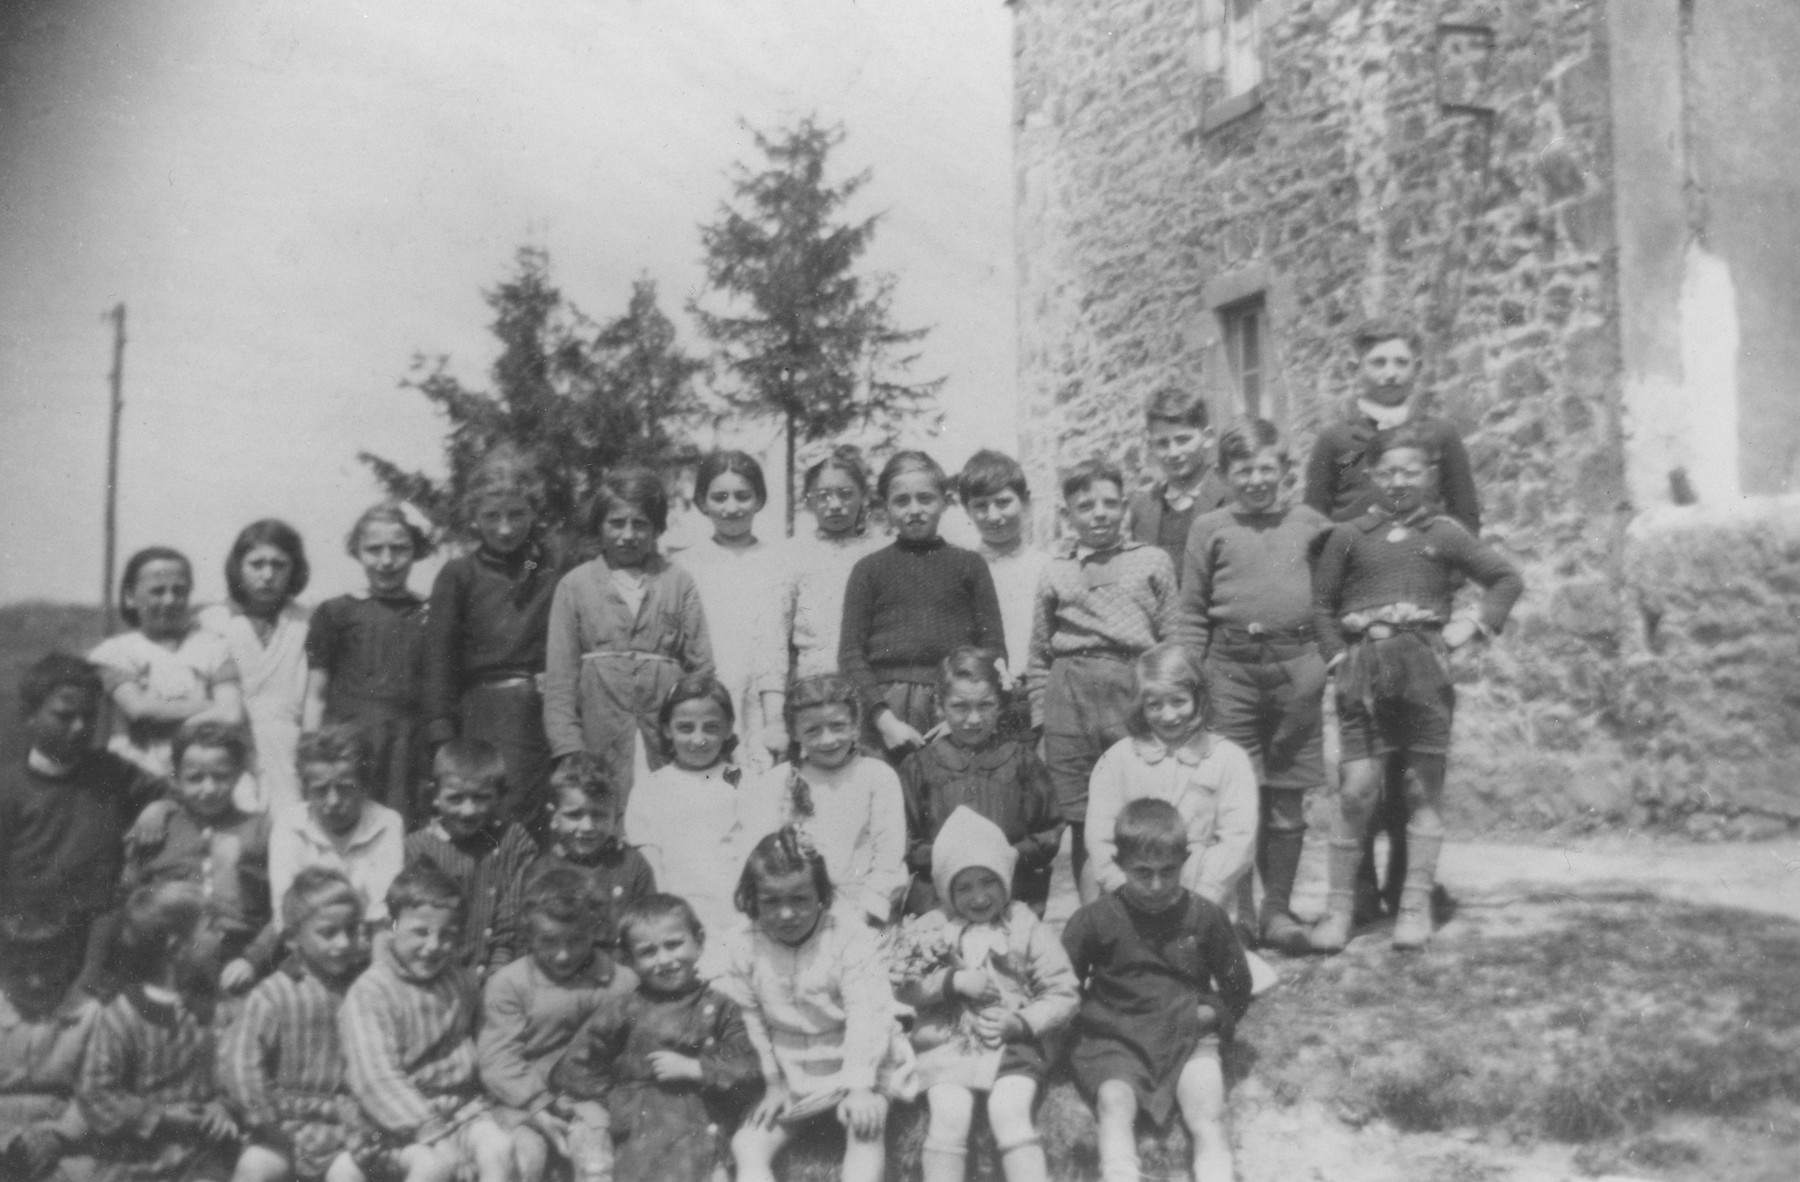 Class picture of a French school in Le Chambon where Micheline and Annette Federman and their cousins were hidden.  Micheline Federman is pictured in the front row, second from the right.  Her cousin Helene is pictured in the second row on the far right.  Annette is pictured standing second from the left, and another cousin Rene is standing fourth from the right.